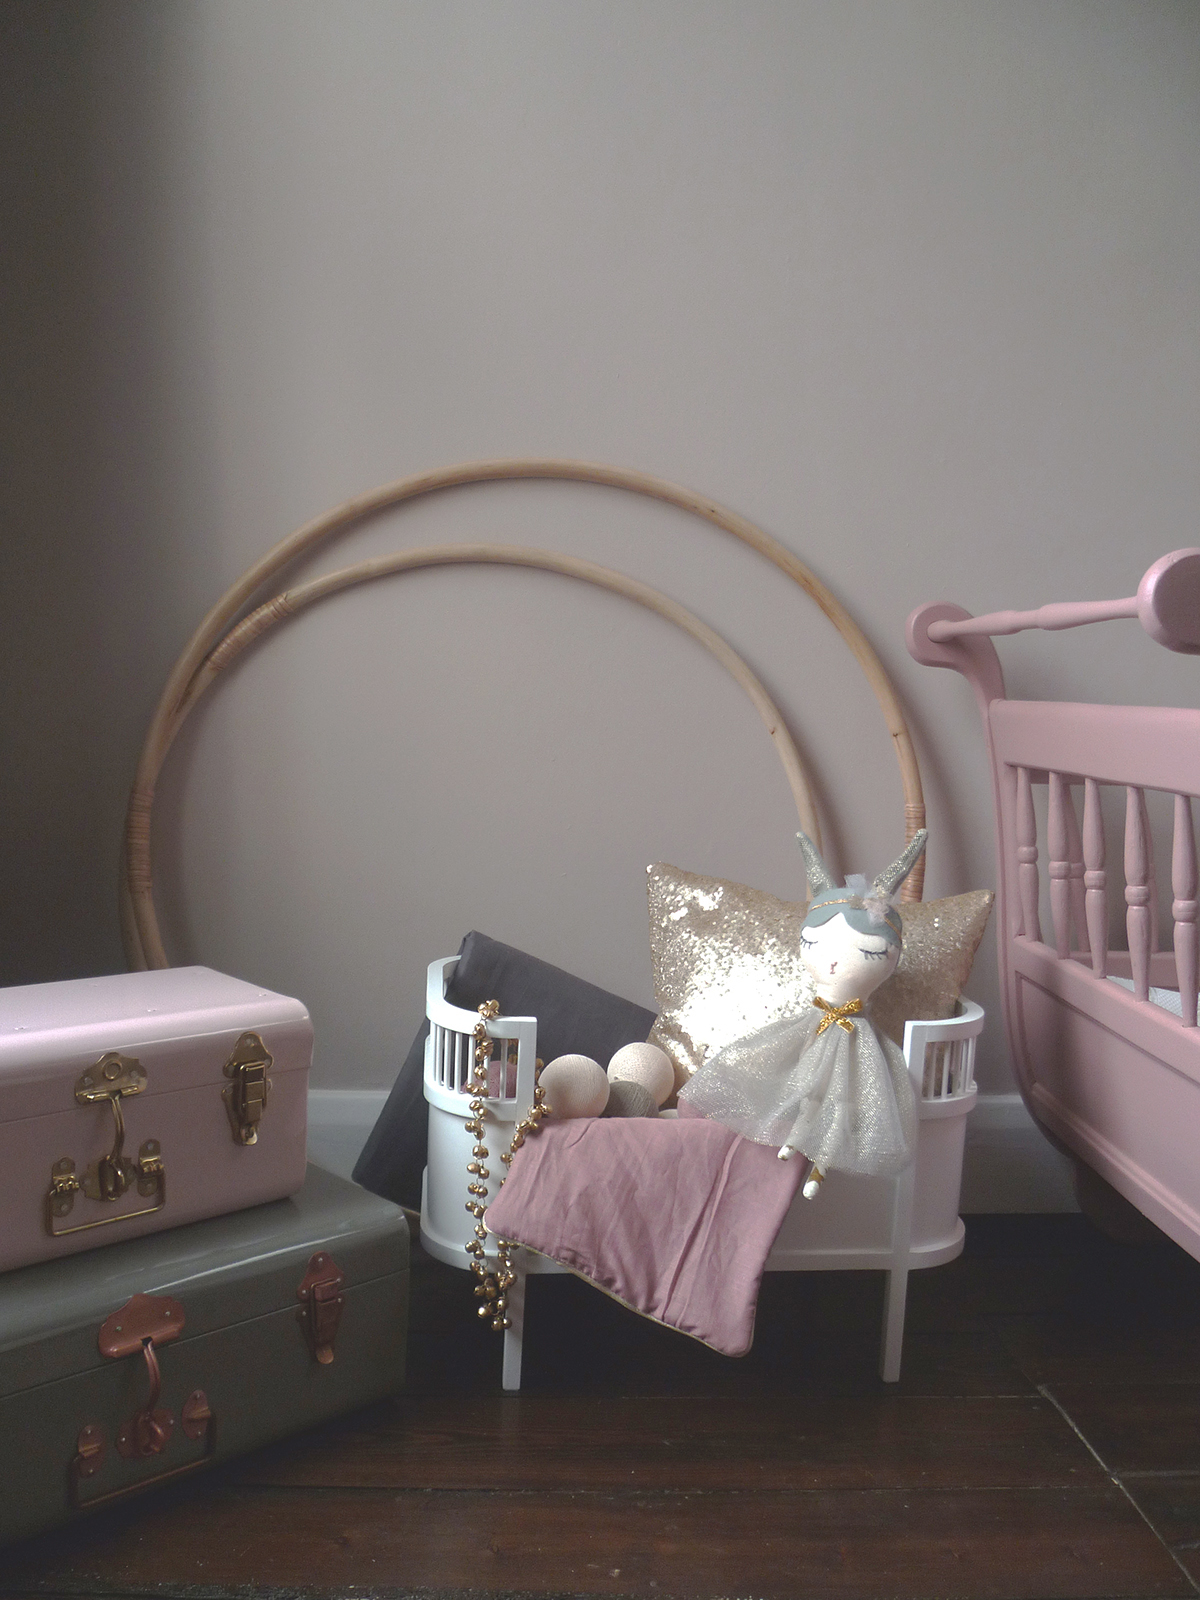 Preciously Me blog : One Room Challenge - Project Nursery